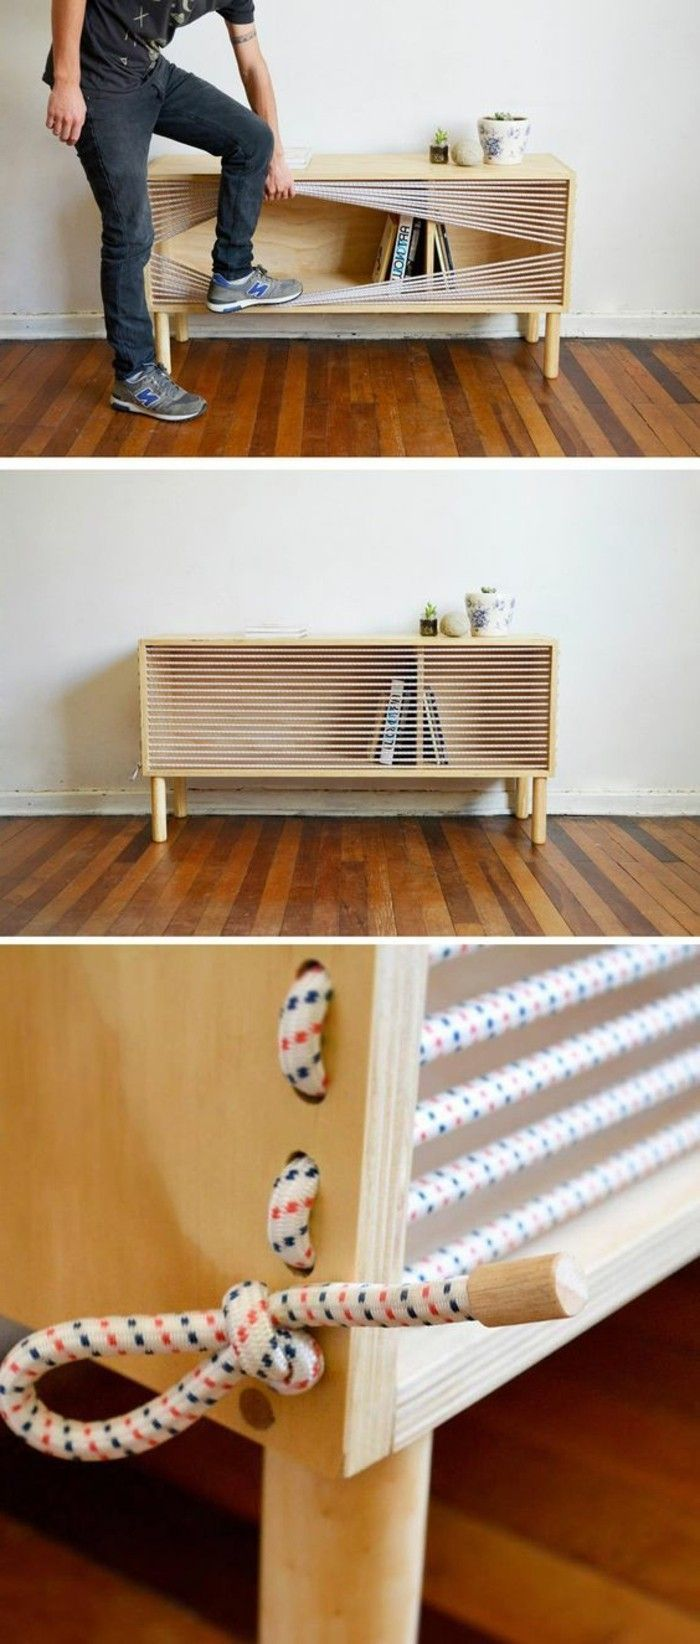 Diy Moebel Do It Yourself Moebel Kleiner Schrank Aus Holz Mit Seilen Do It Yourself Möbel Schrank Bauen Diy Möbel